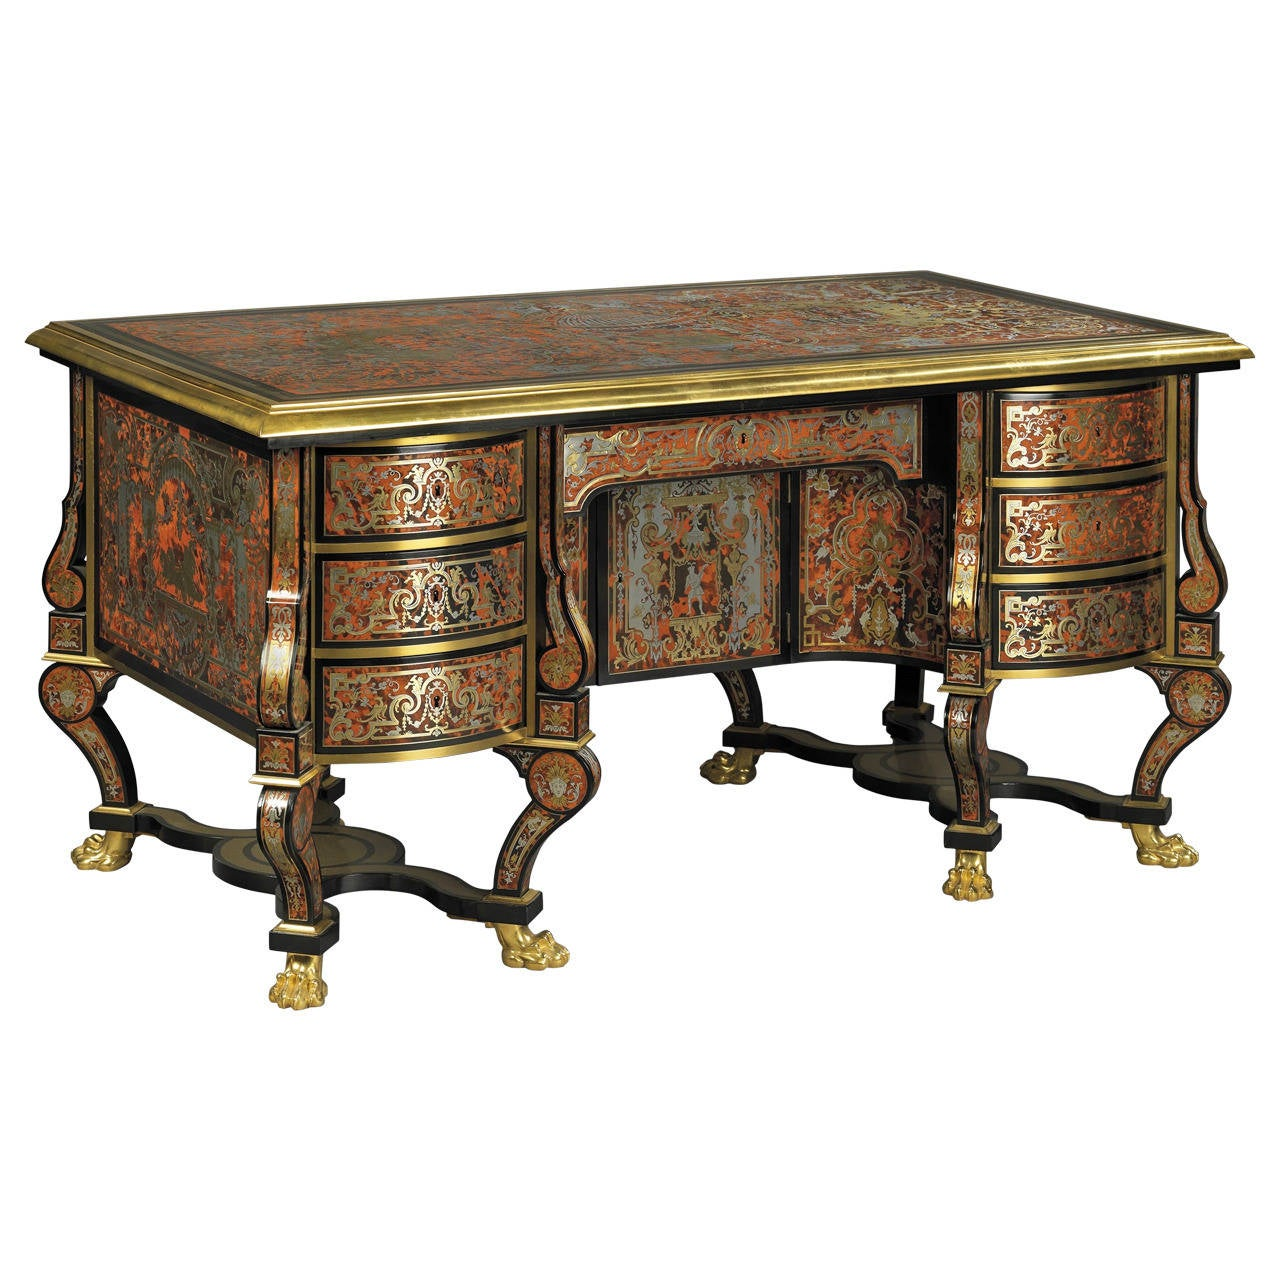 bureau mazarin desk for sale at 1stdibs. Black Bedroom Furniture Sets. Home Design Ideas